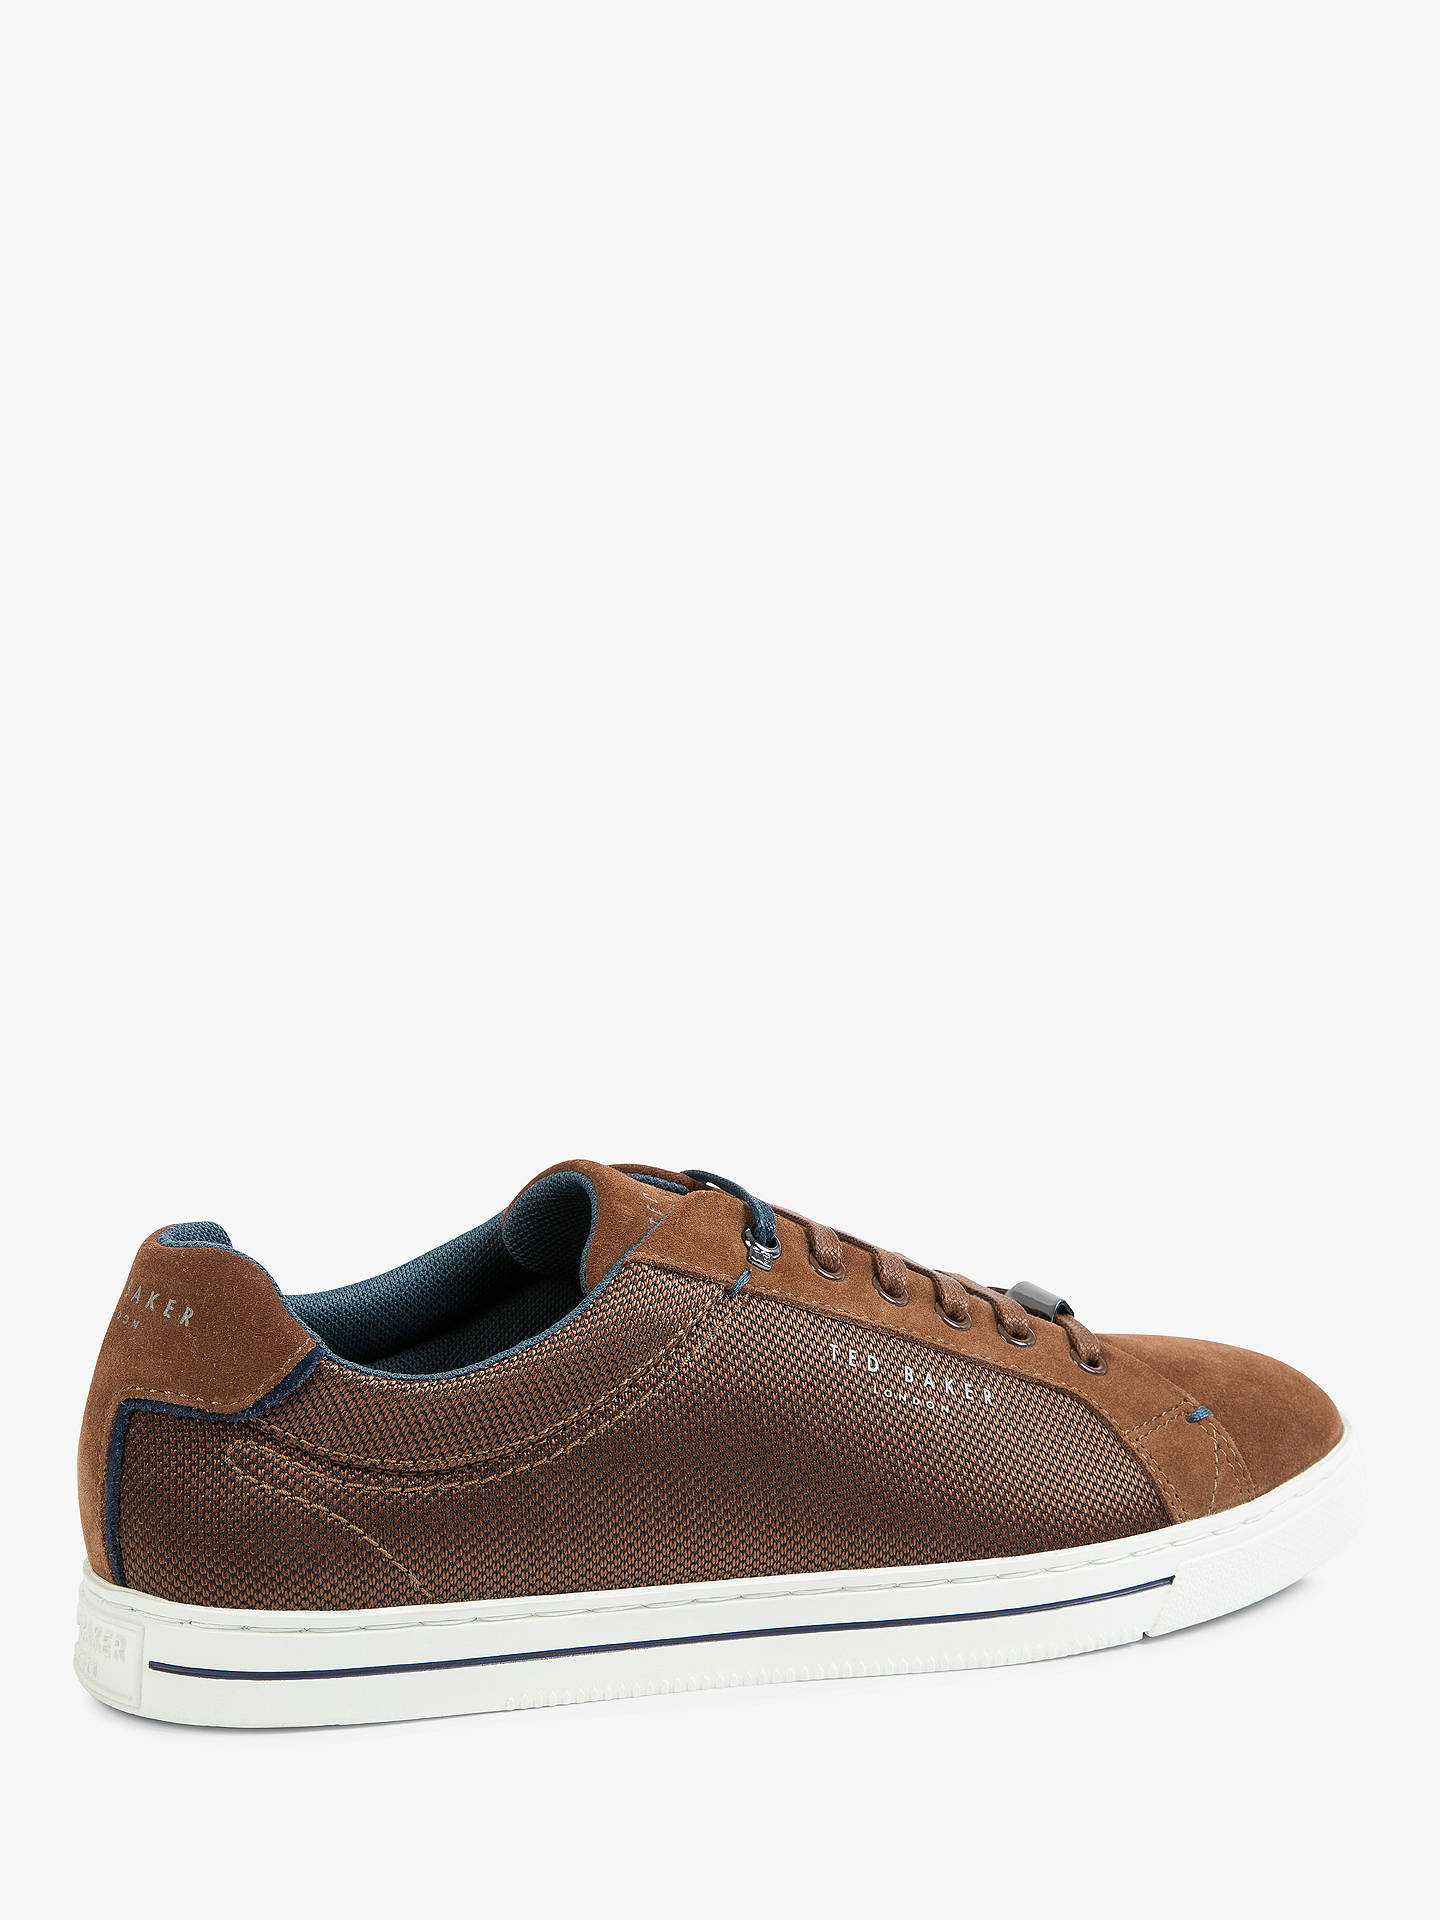 BuyTed Baker Eeril Trainers, Tan, 7 Online at johnlewis.com